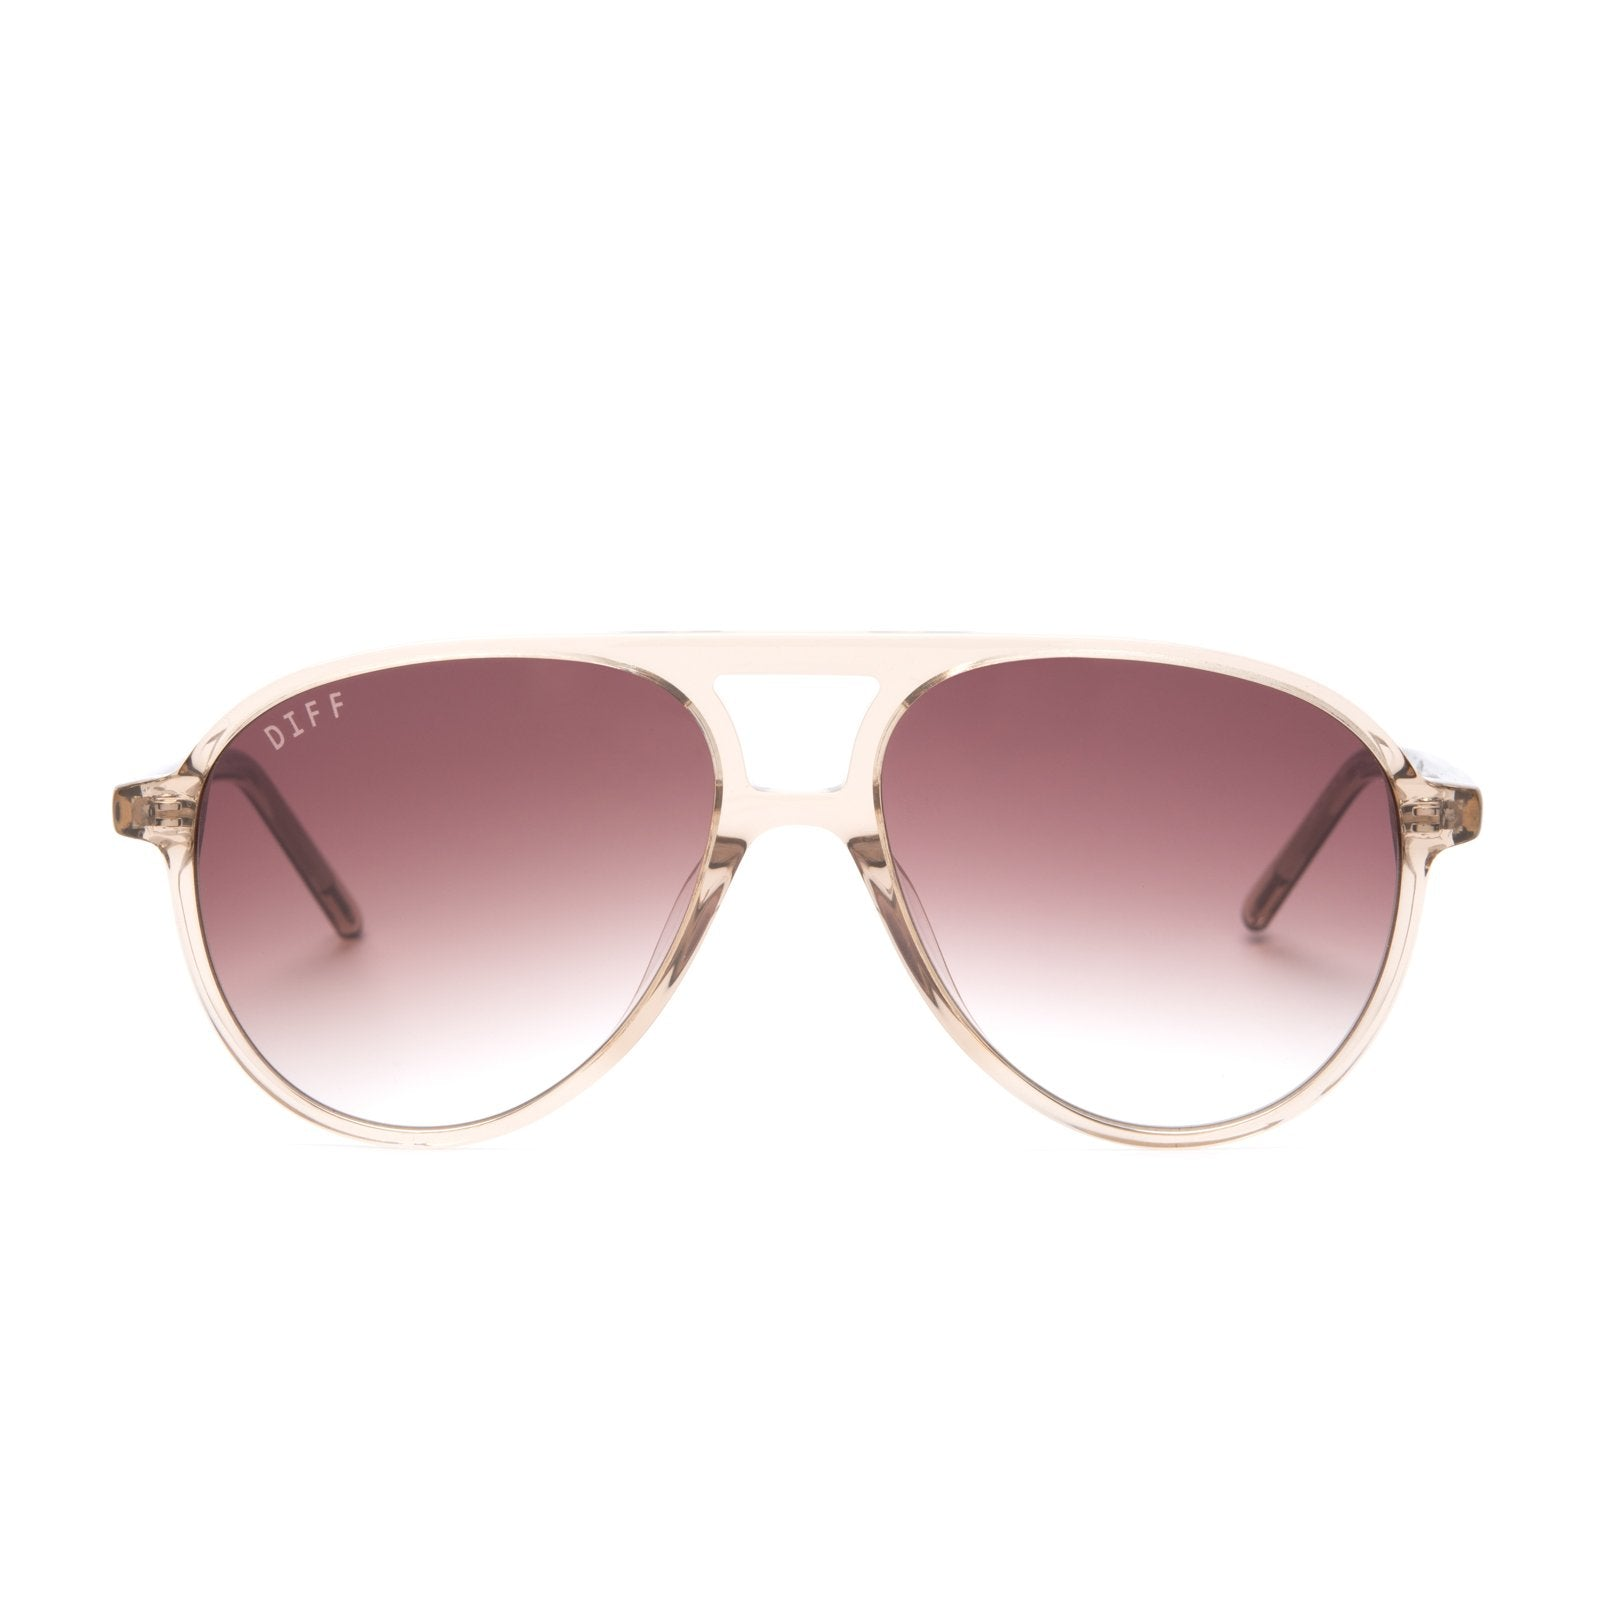 Jett sunglasses with vintage crystal frames and brown gradient lens front view